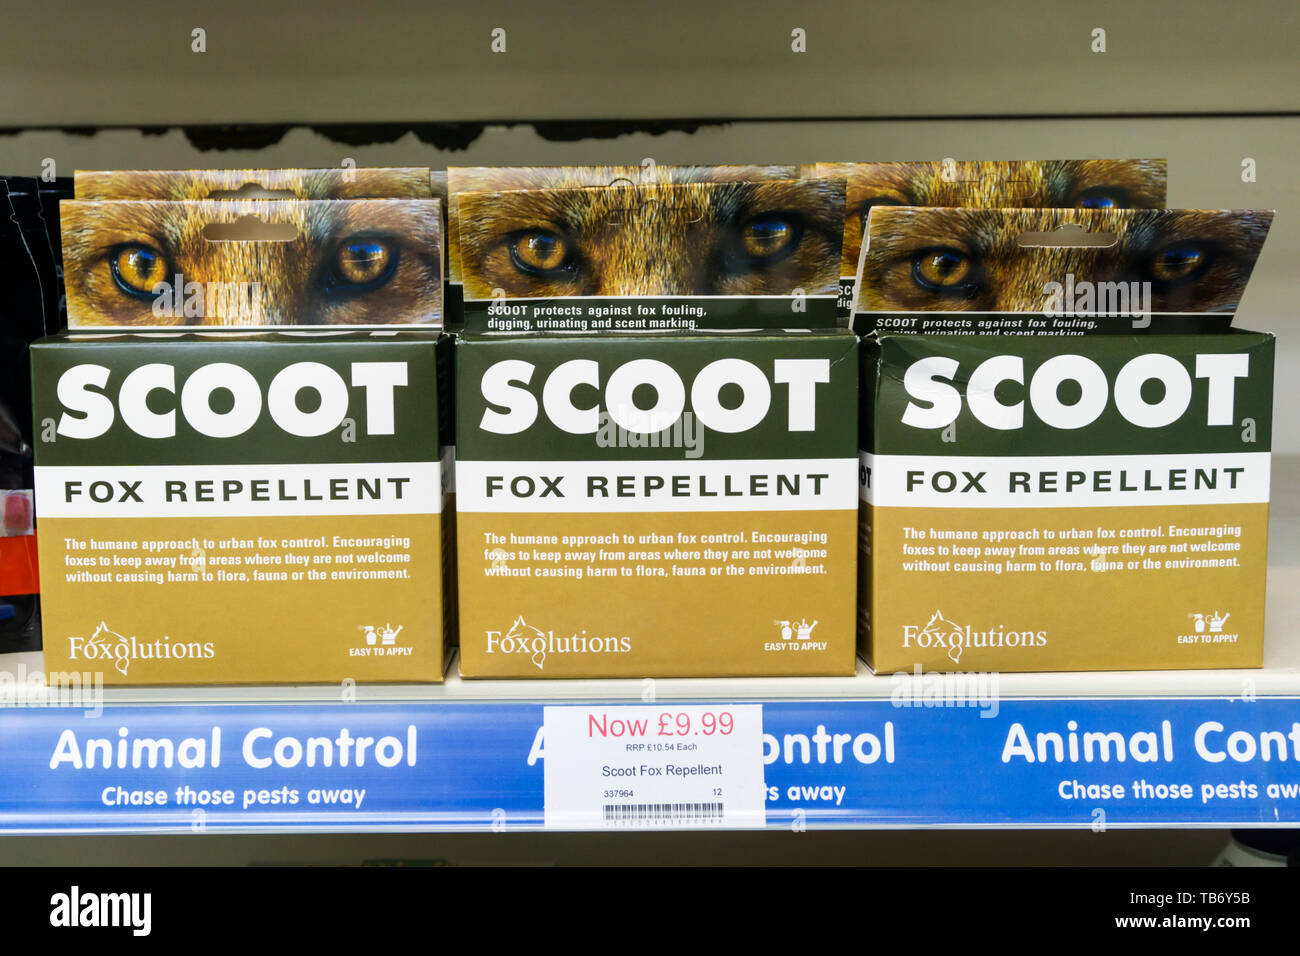 Scoot is a product intended to deter urban foxes from gardens. - Stock Image